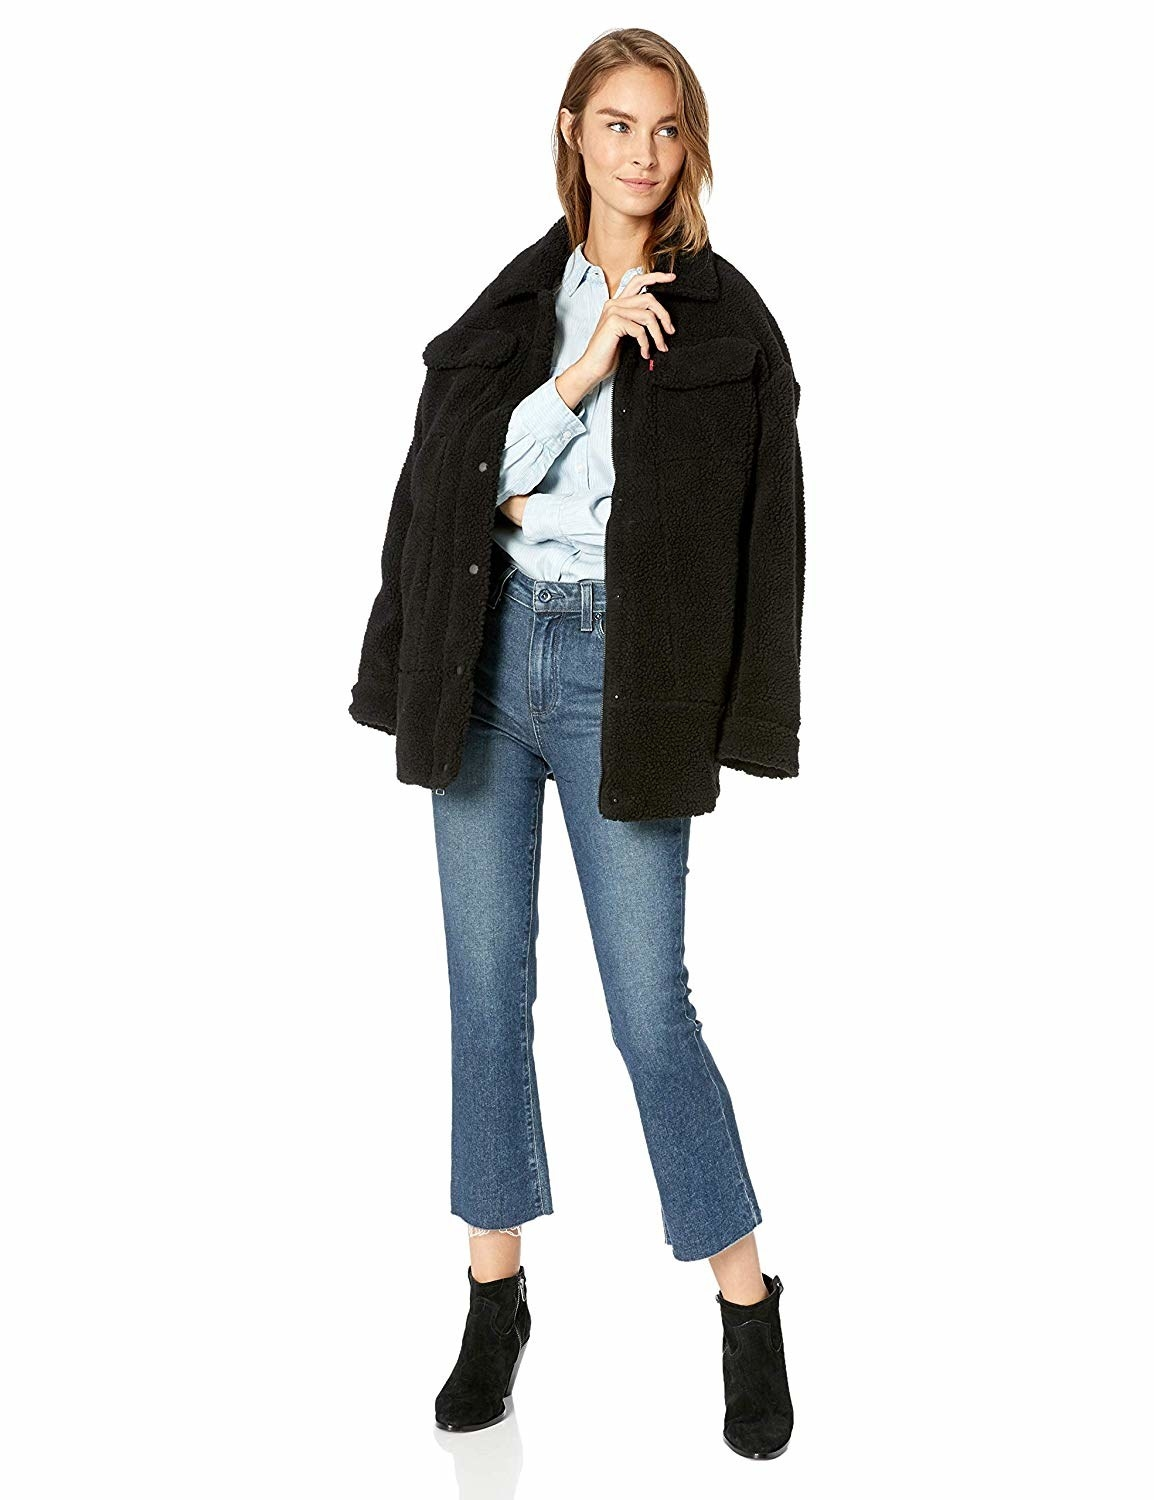 Model wearing the oversized black fuzzy jacket with pockets on both side of the chest draped over their shoulder